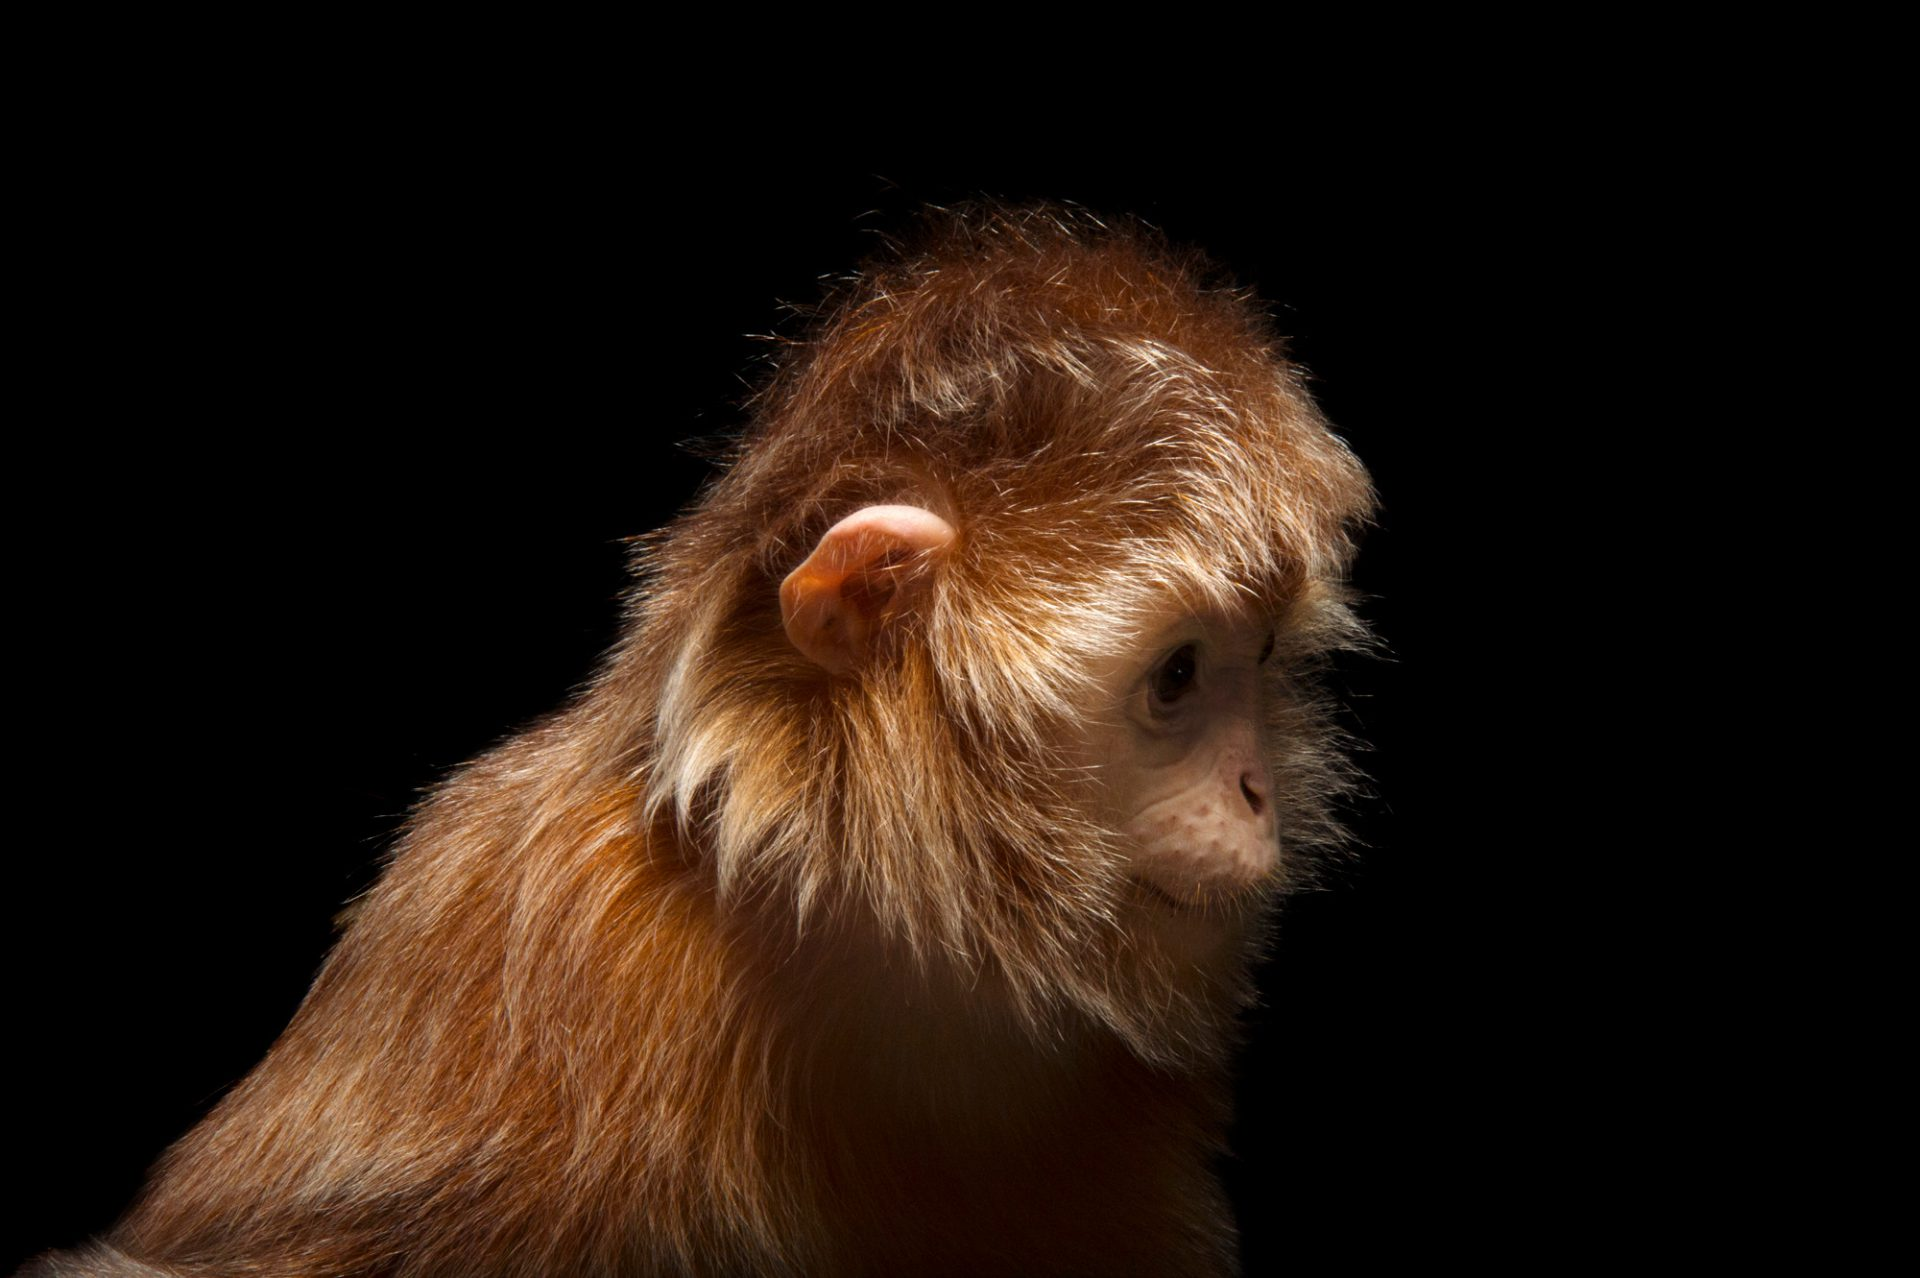 Picture of a vulnerable Javan lutung (Trachypithecus auratus) at the Omaha Zoo.